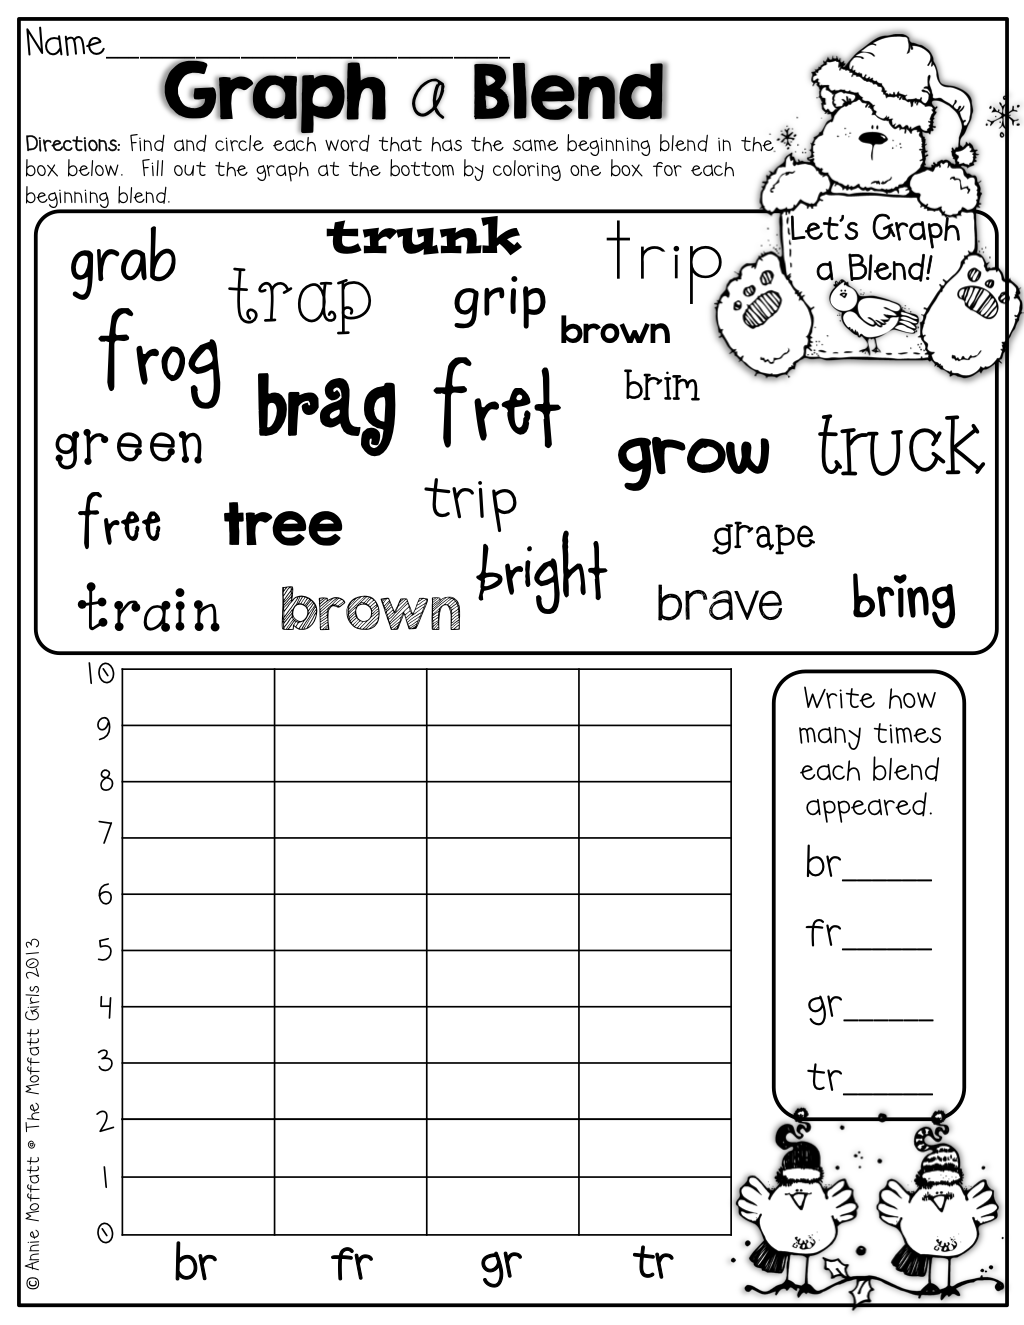 Graph A Blend The Different Fonts Are Great For Helping Students Read Words In A Variety Of